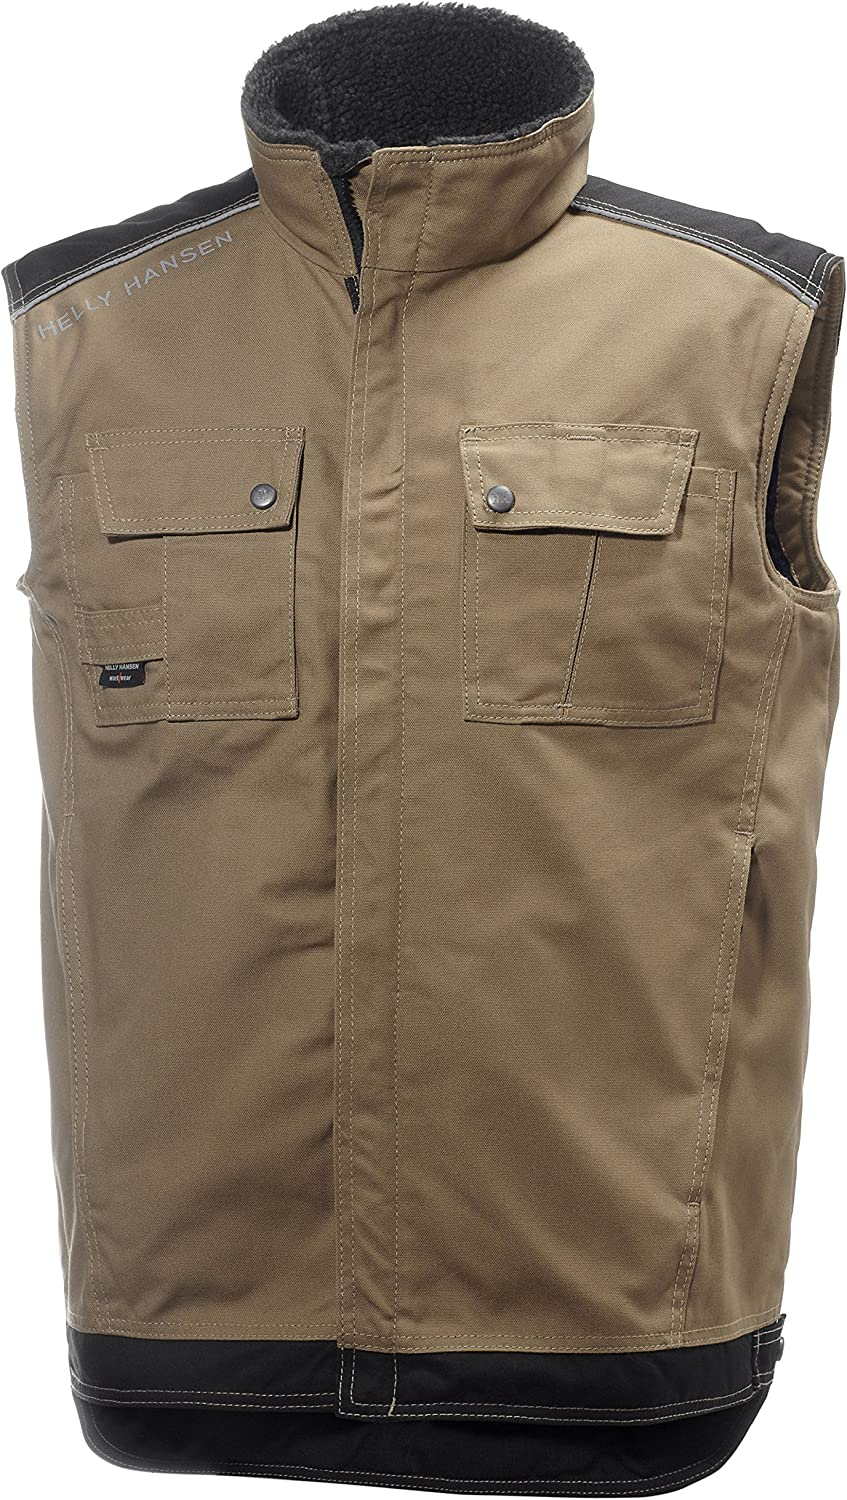 Helly Hansen Workwear Men's Chelsea Lined Big and Tall Vest